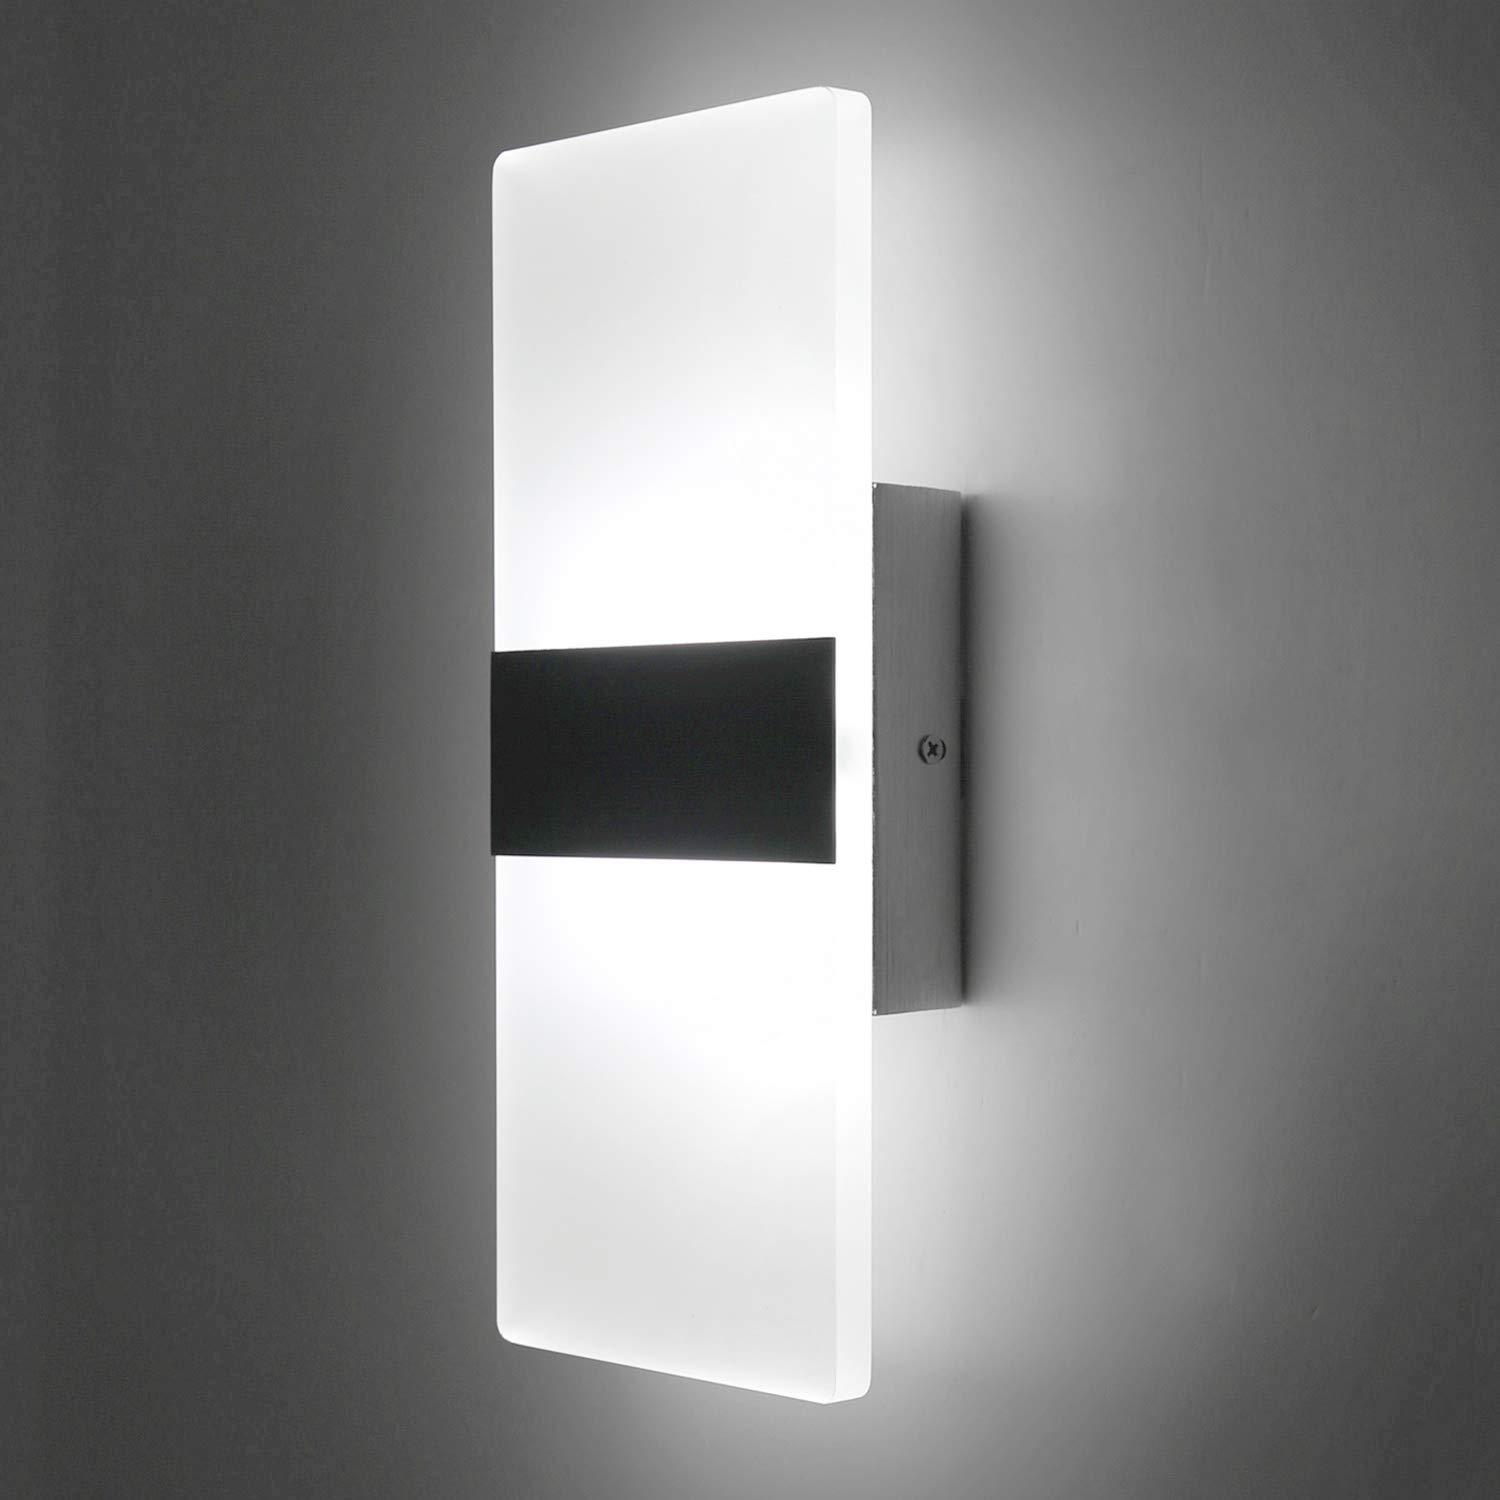 Lightess up down wall light 12w modern wall sconce acrylic led wall lamp for hallway bedroom corridor cool white hs521 1